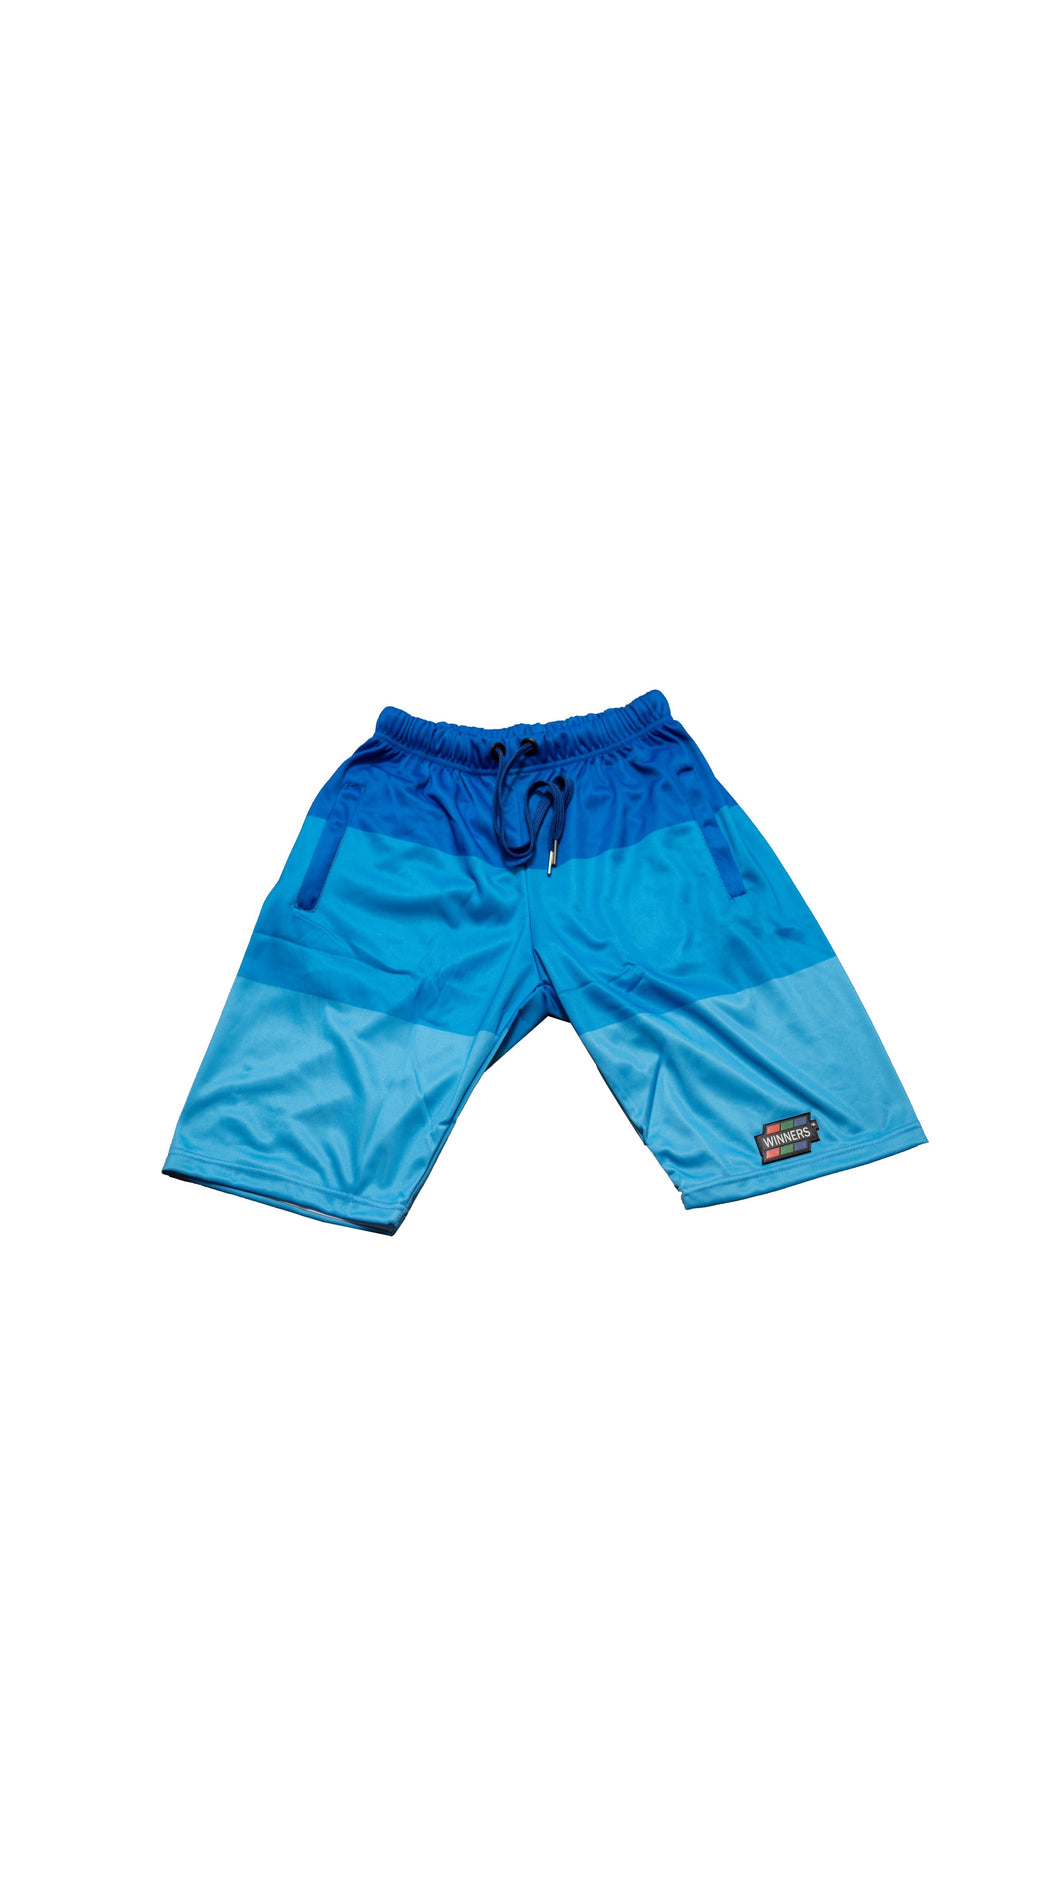 Winners Blend Shorts – Blue